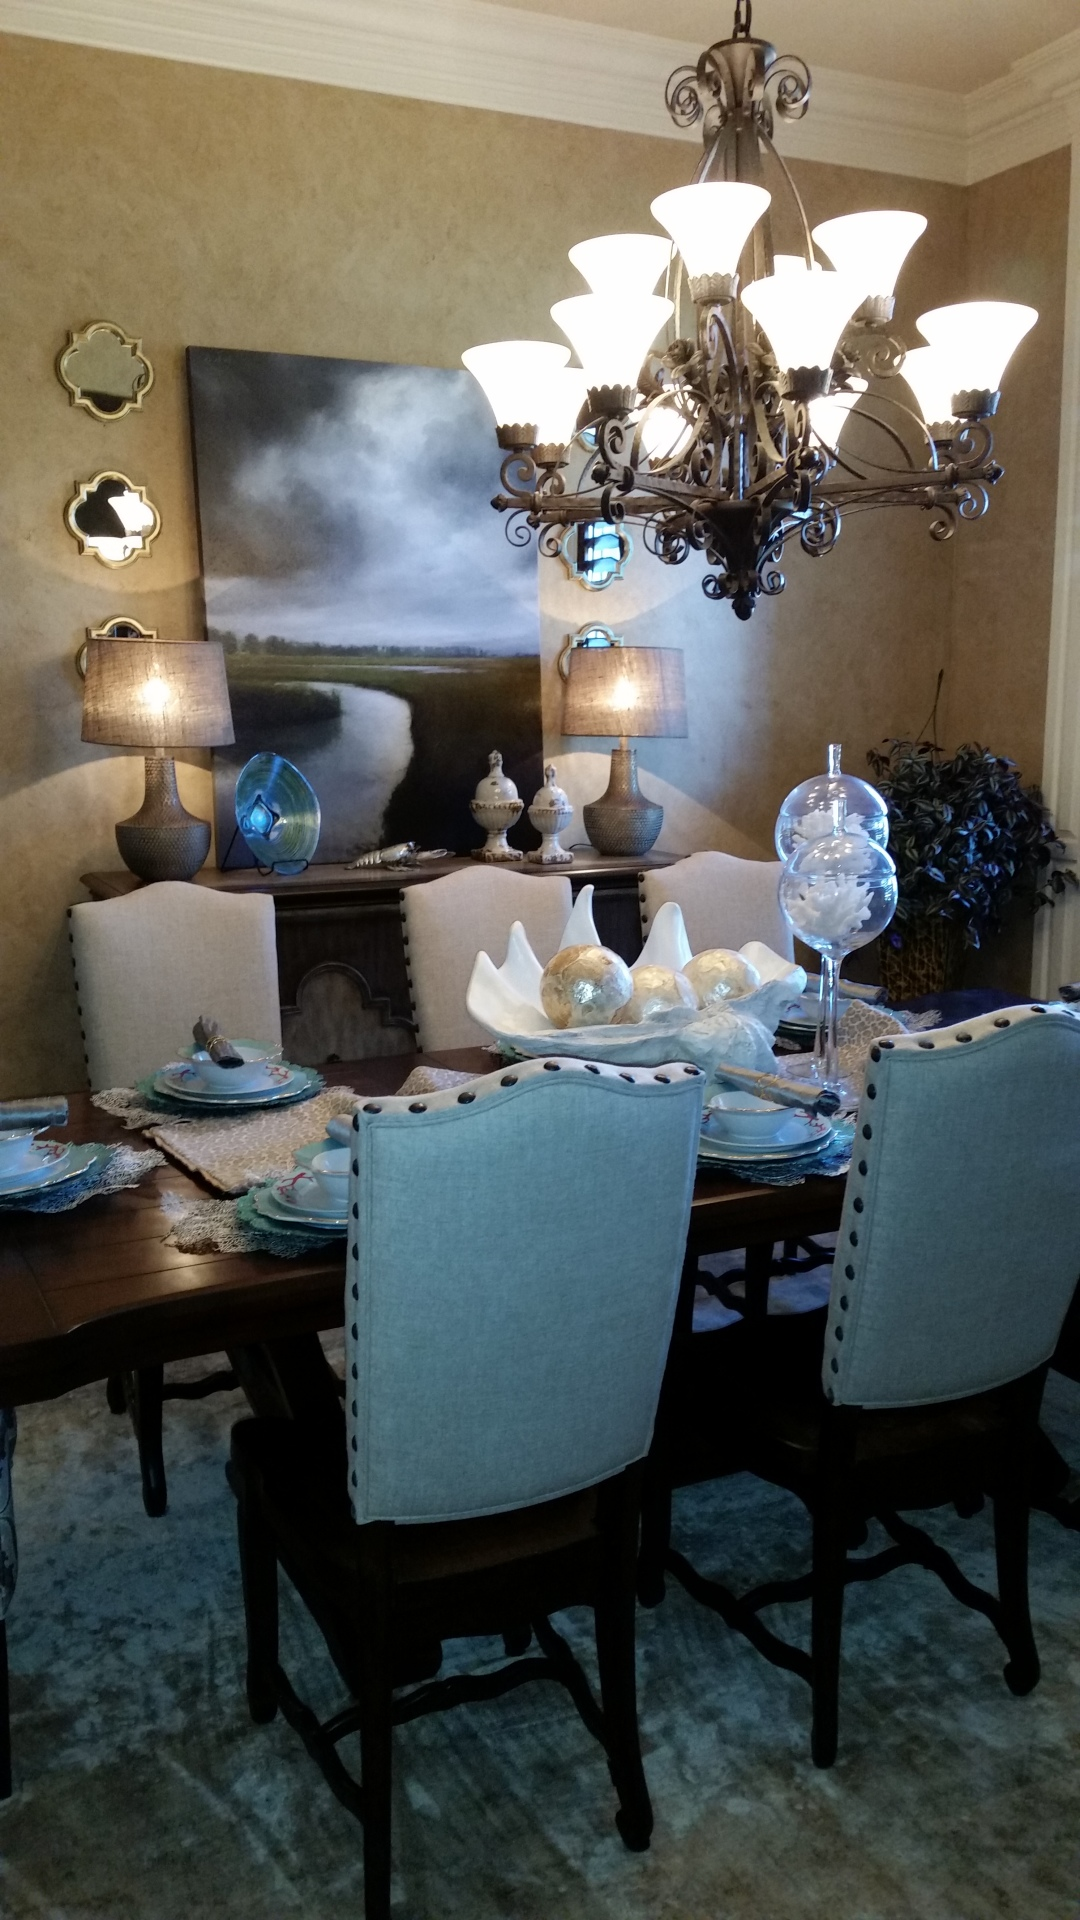 Home Decor by Carrie Cain image 3